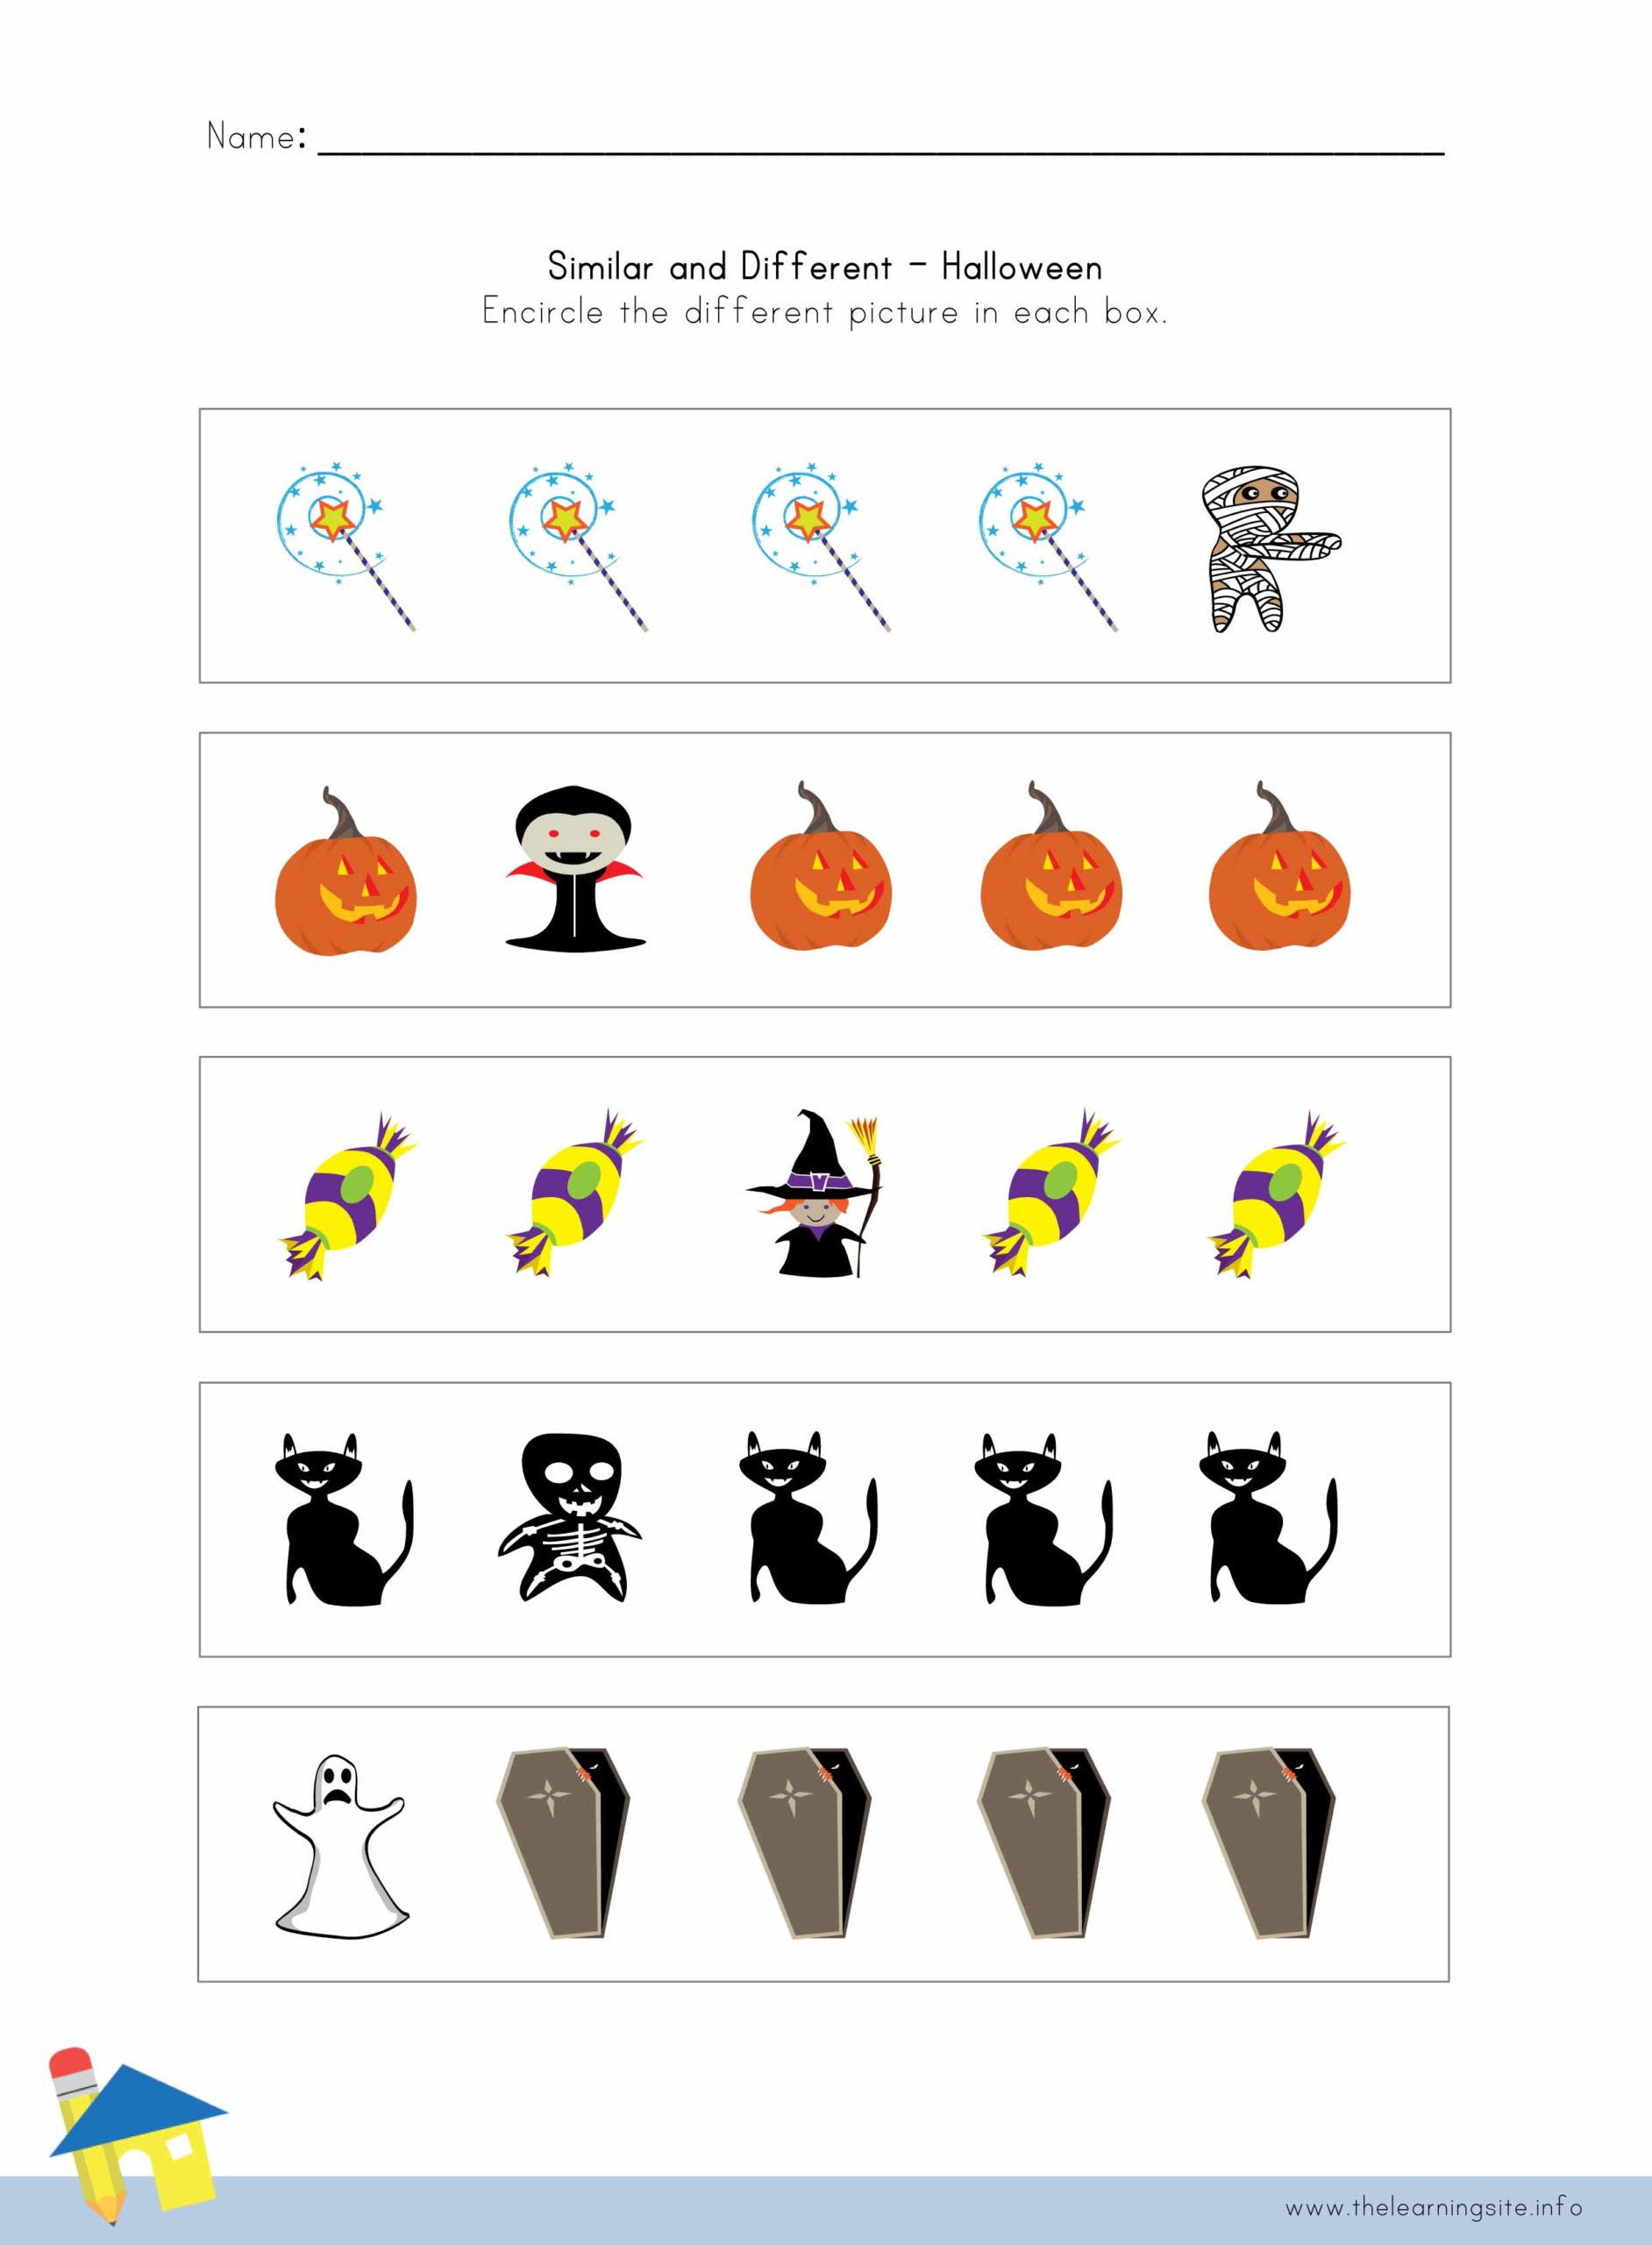 Halloween Similar And Different Worksheet 1 – The Learning Site